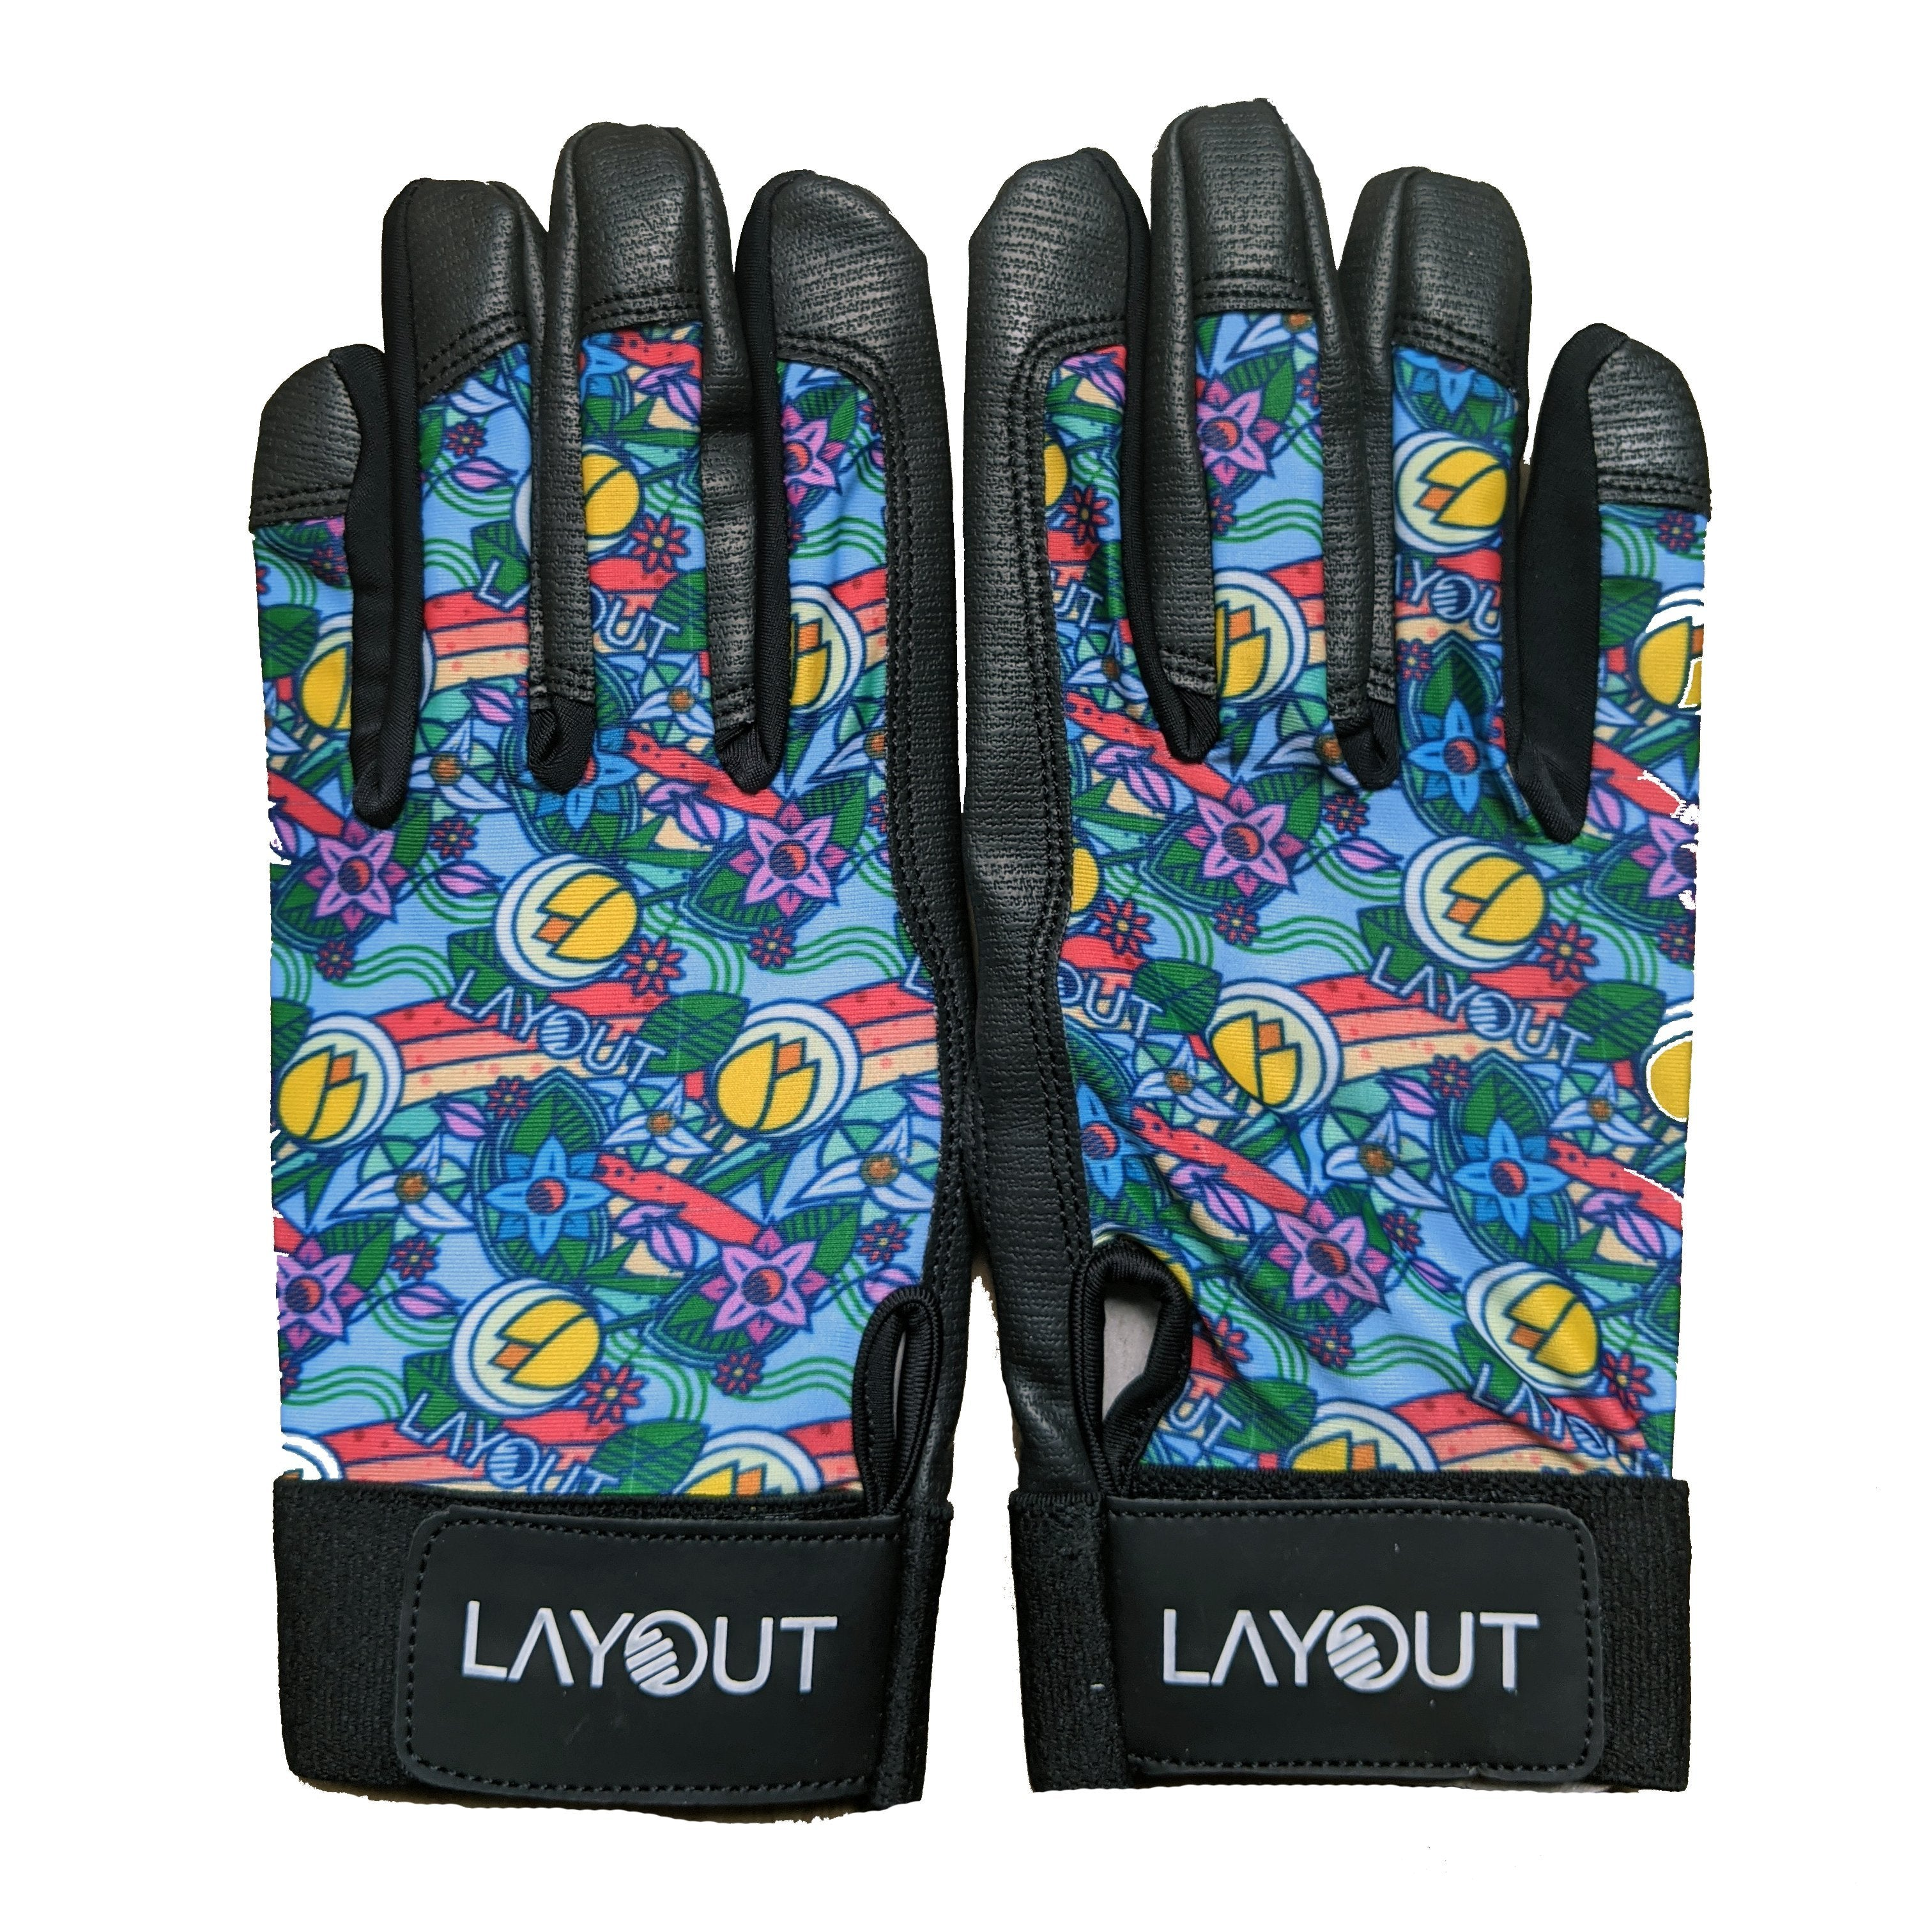 Layout Classic Glove - Layout Ultimate